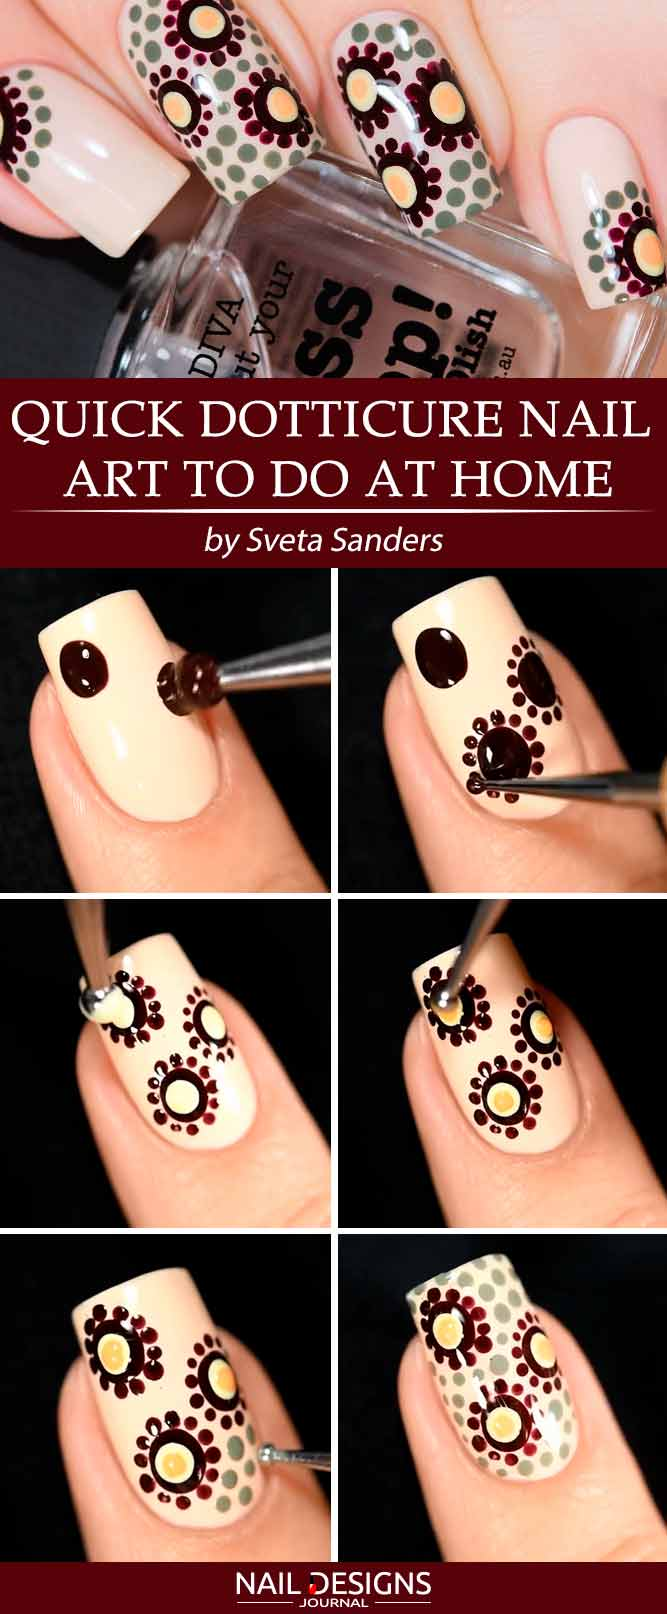 Quick Dotticure Nail Art To Do At Home